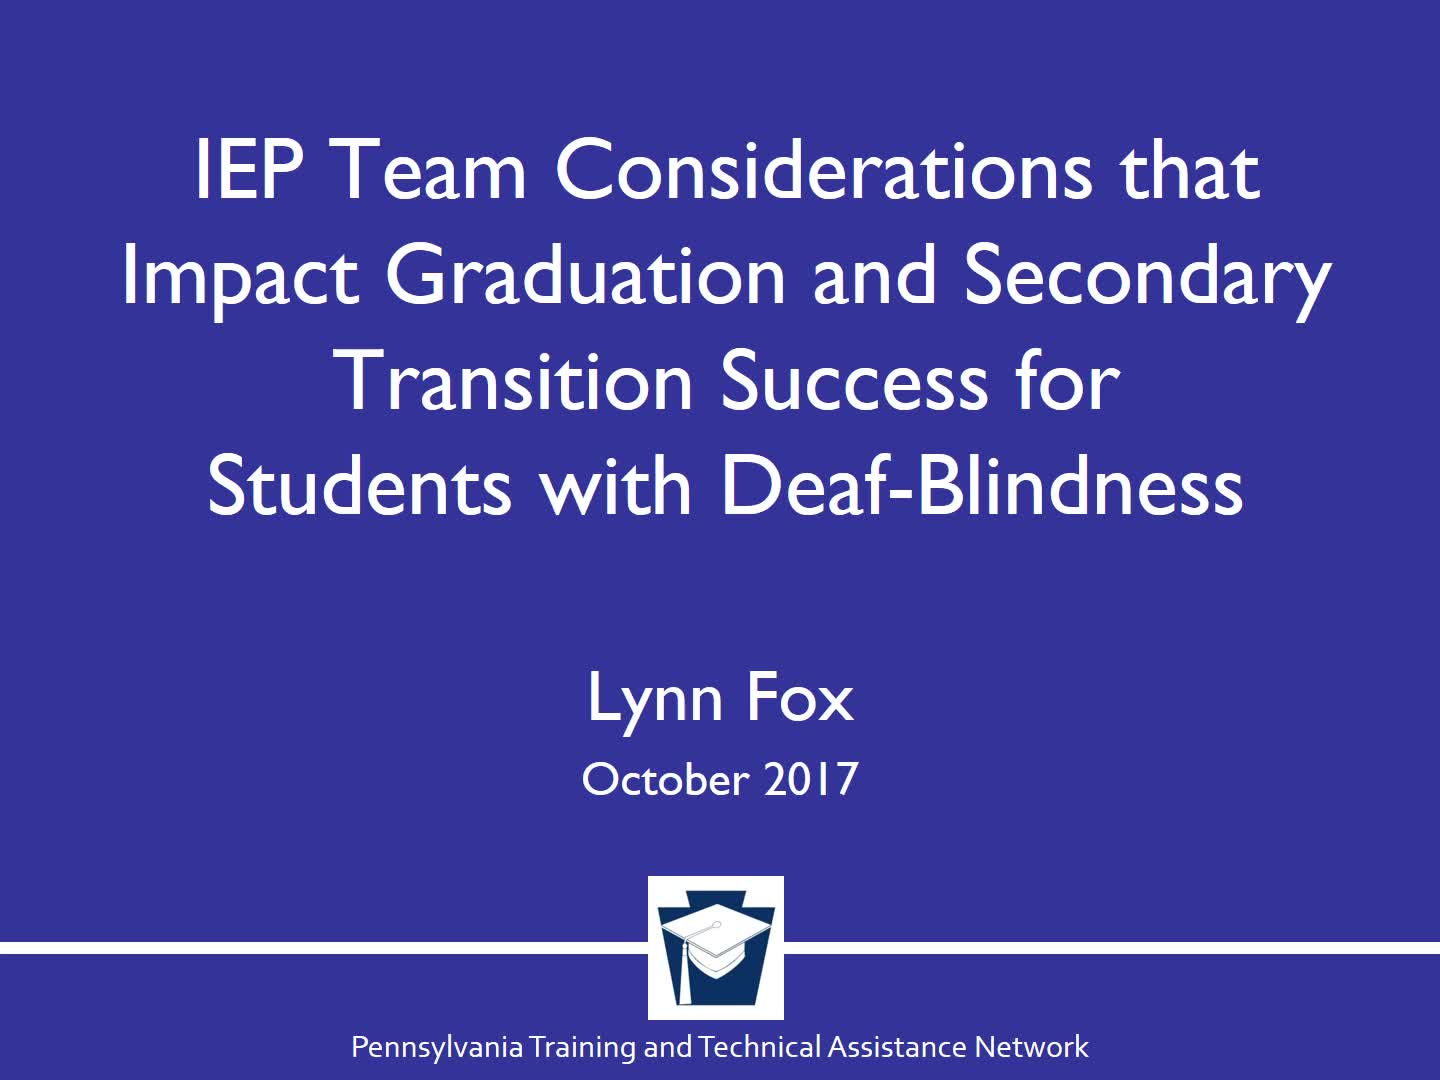 IEP Team Considerations that Impact Graduation and Secondary Transition Success for Students with Deaf-Blindness